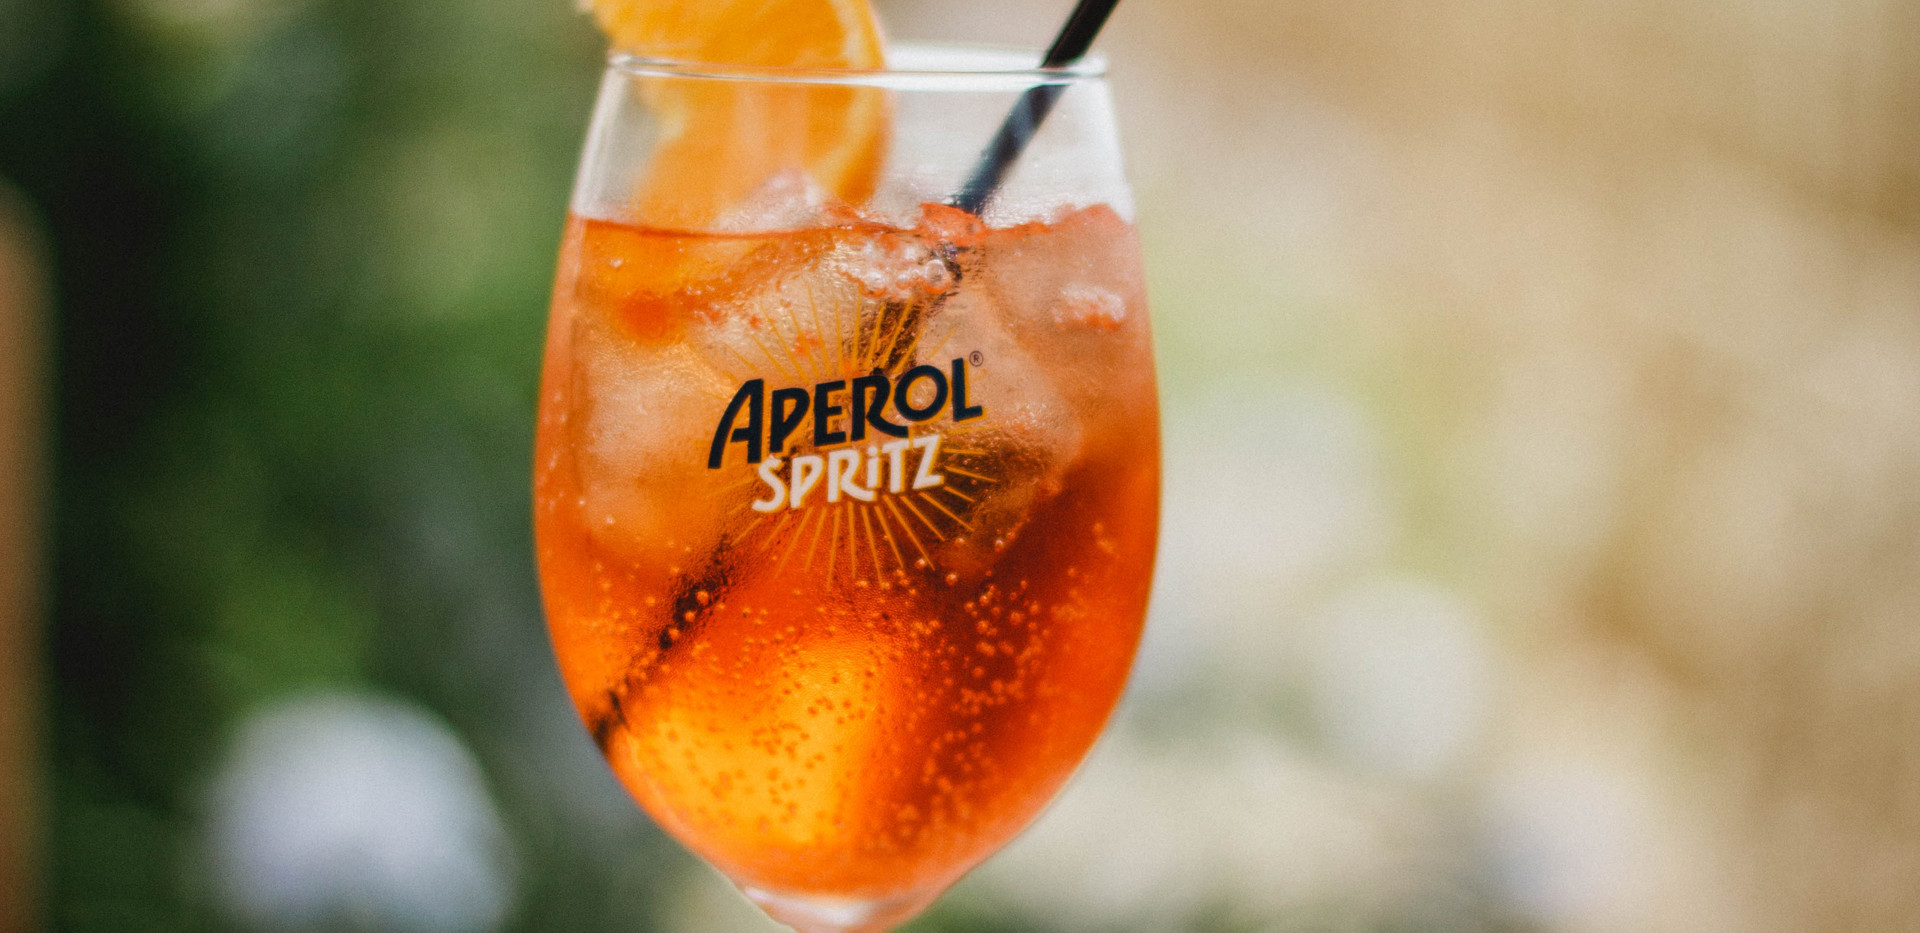 alcohol-aperol-spritz-beverage-1280364.j